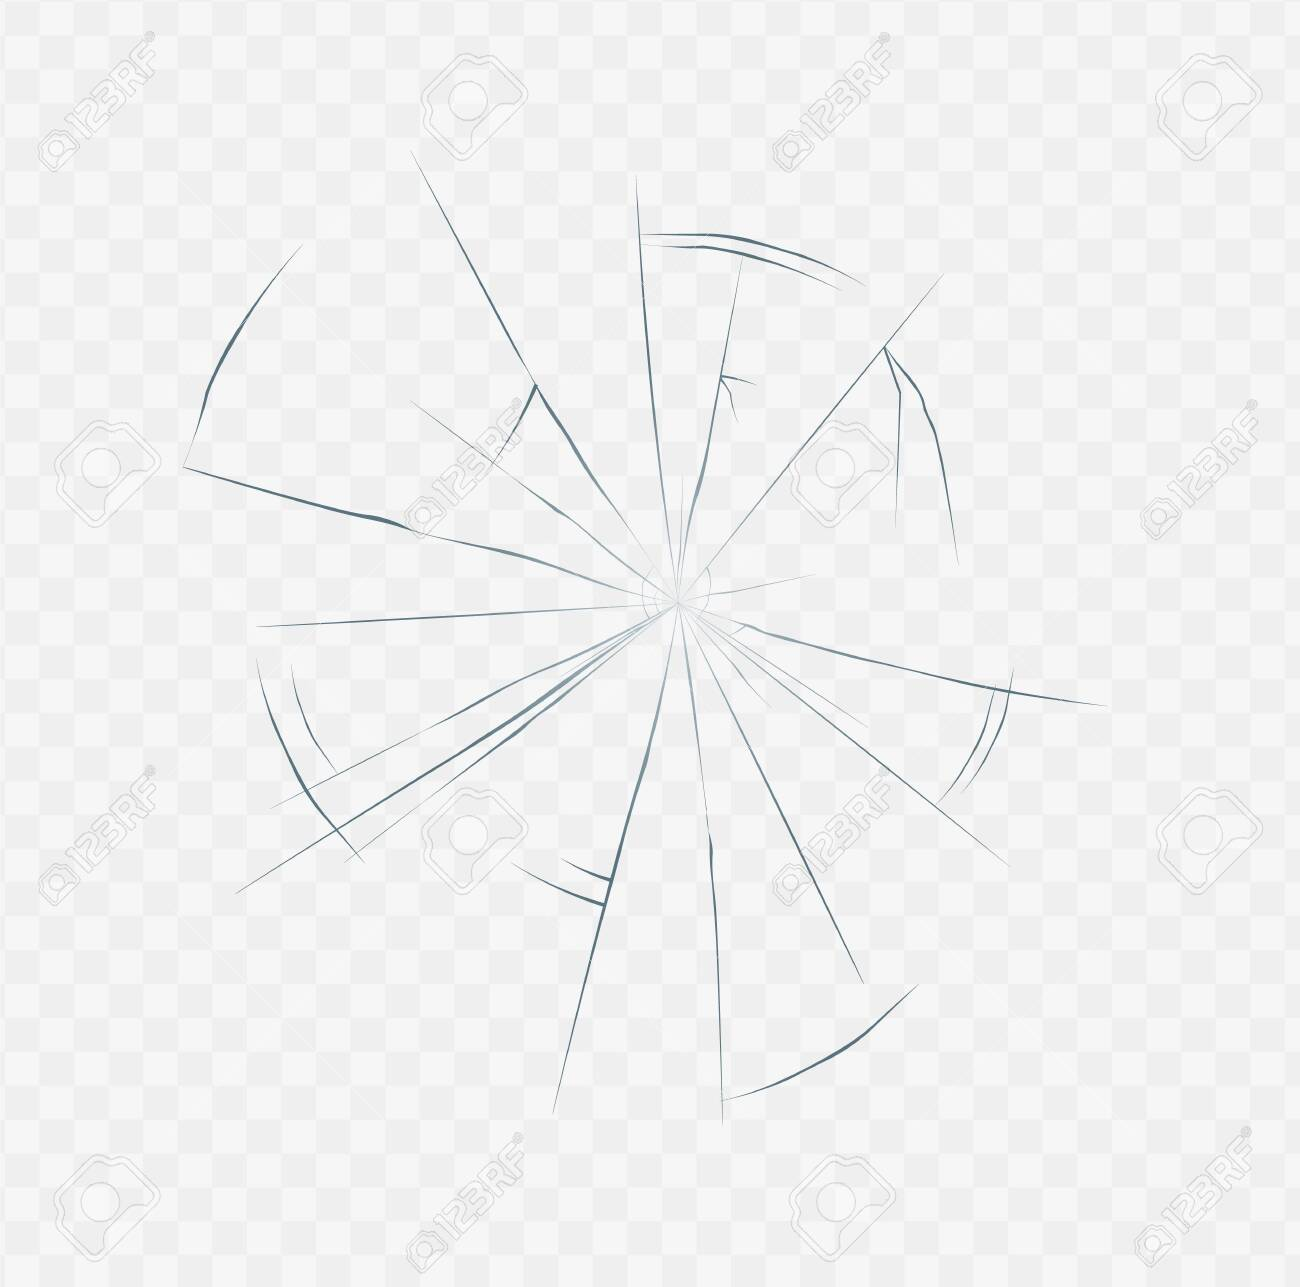 Realistic cracked glass texture isolated on white transparent background. Broken surface crack effect in spider web shape, daylight vector illustration. - 130223115